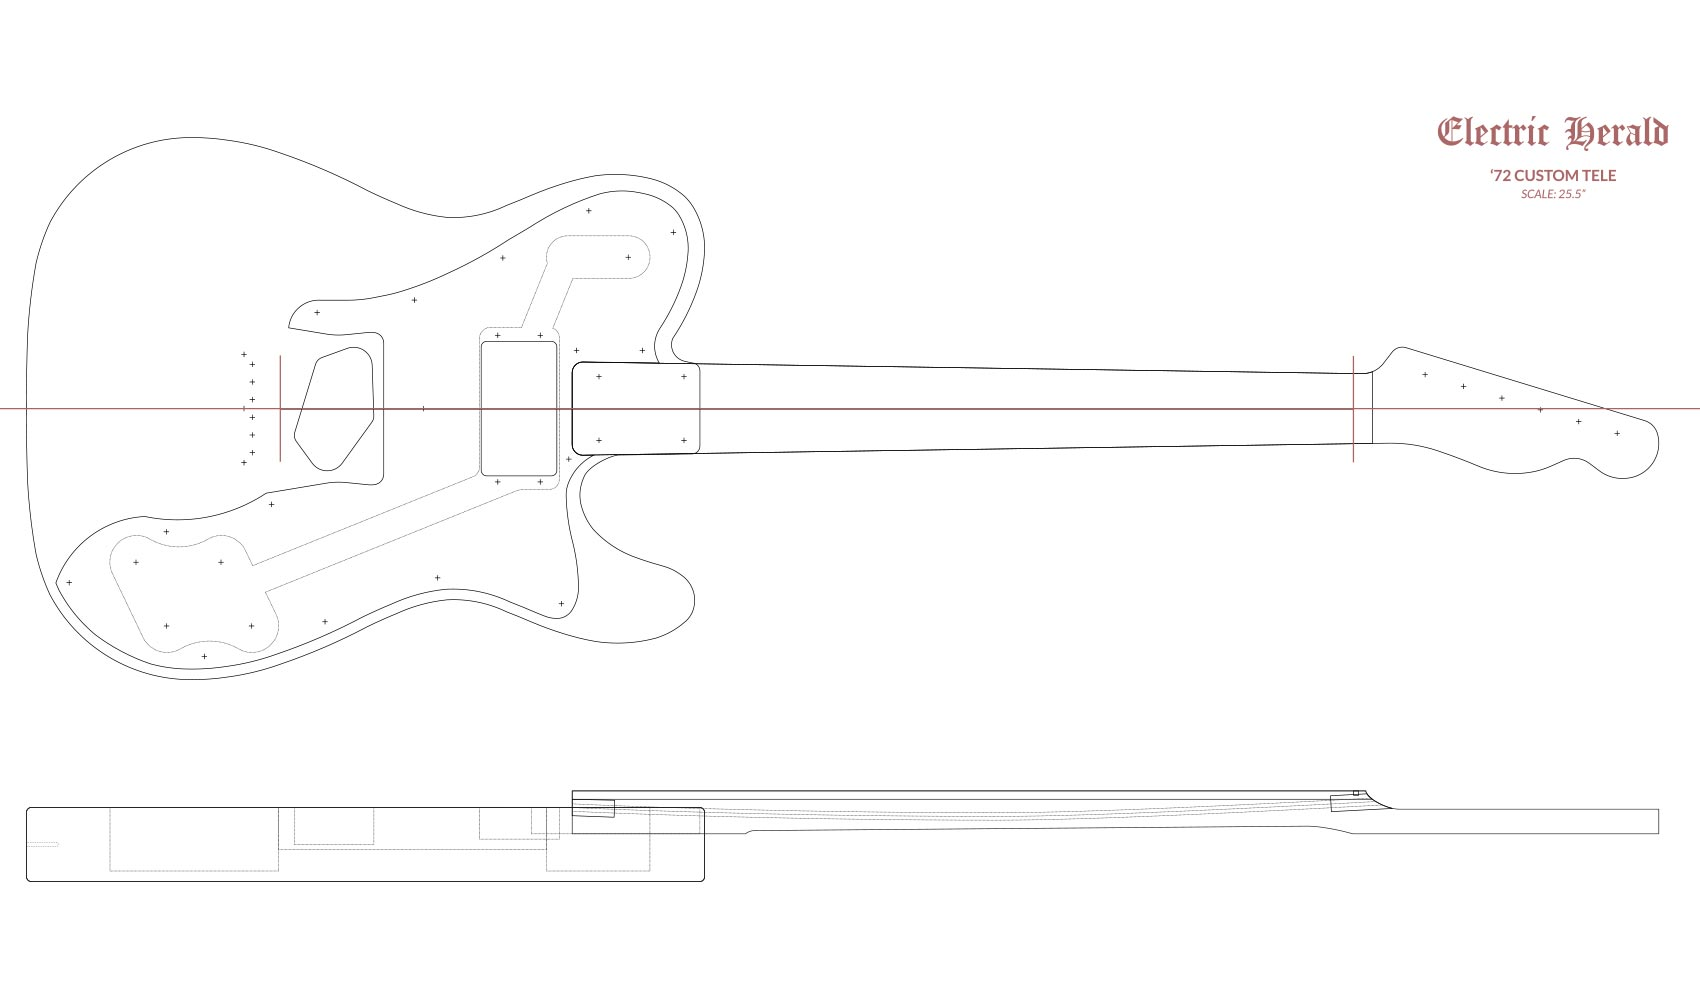 Fender Telecaster Router Templates (\'72 Custom) | Electric Herald